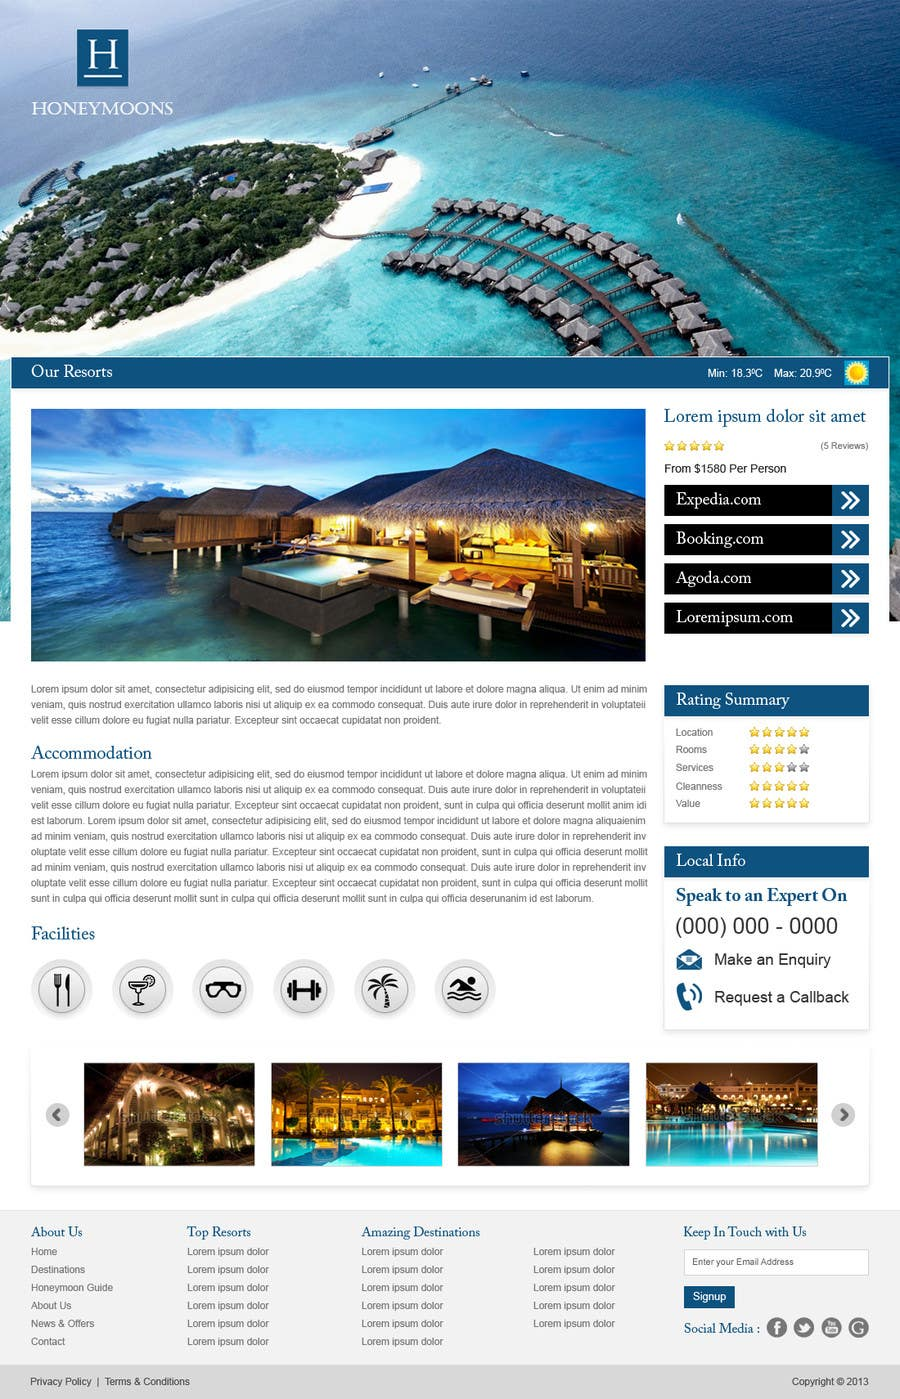 Penyertaan Peraduan #                                        42                                      untuk                                         Website Design for Honeymoons website